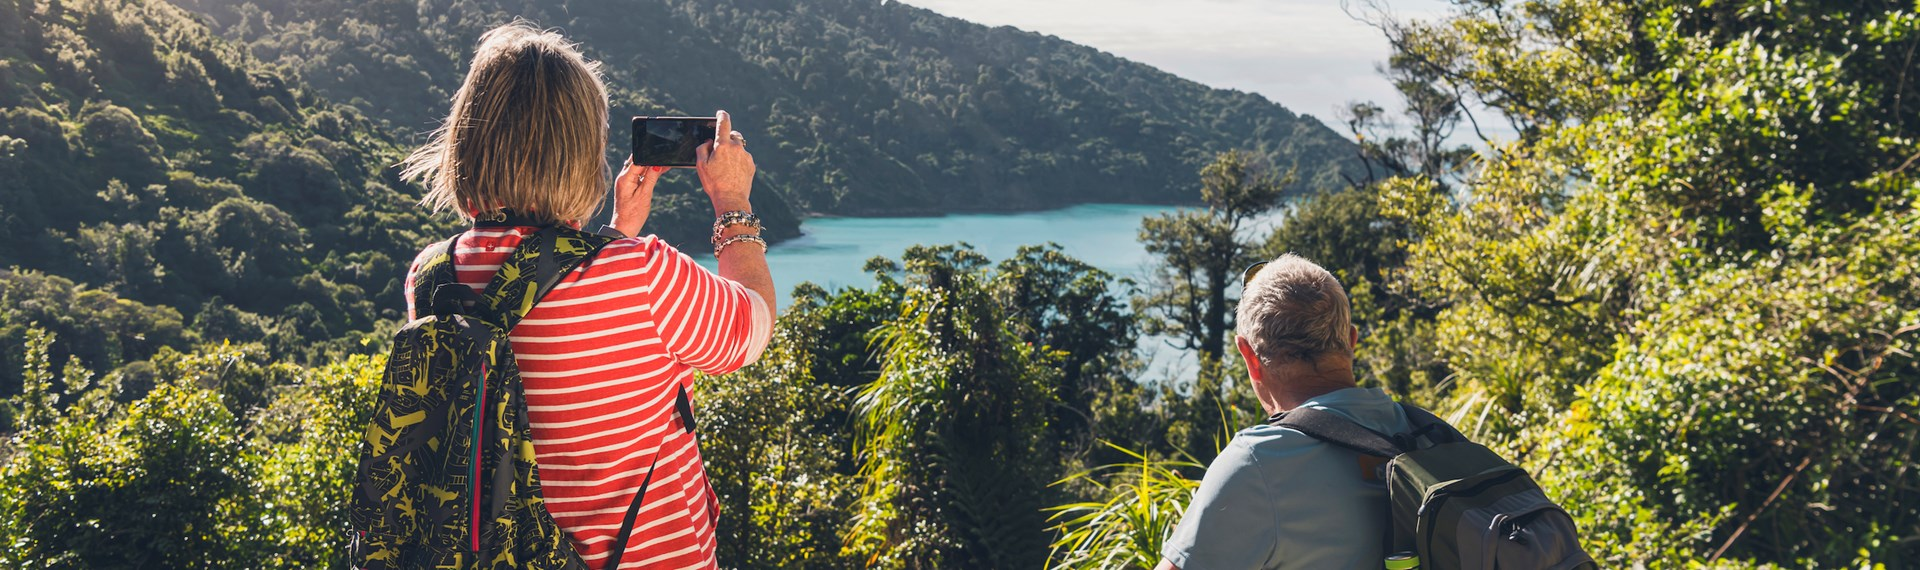 A woman takes a photo on her phone of the view across Ship Cove/Meretoto while a man sits on a bench on the northern Queen Charlotte Track in the Marlborough Sounds, New Zealand.